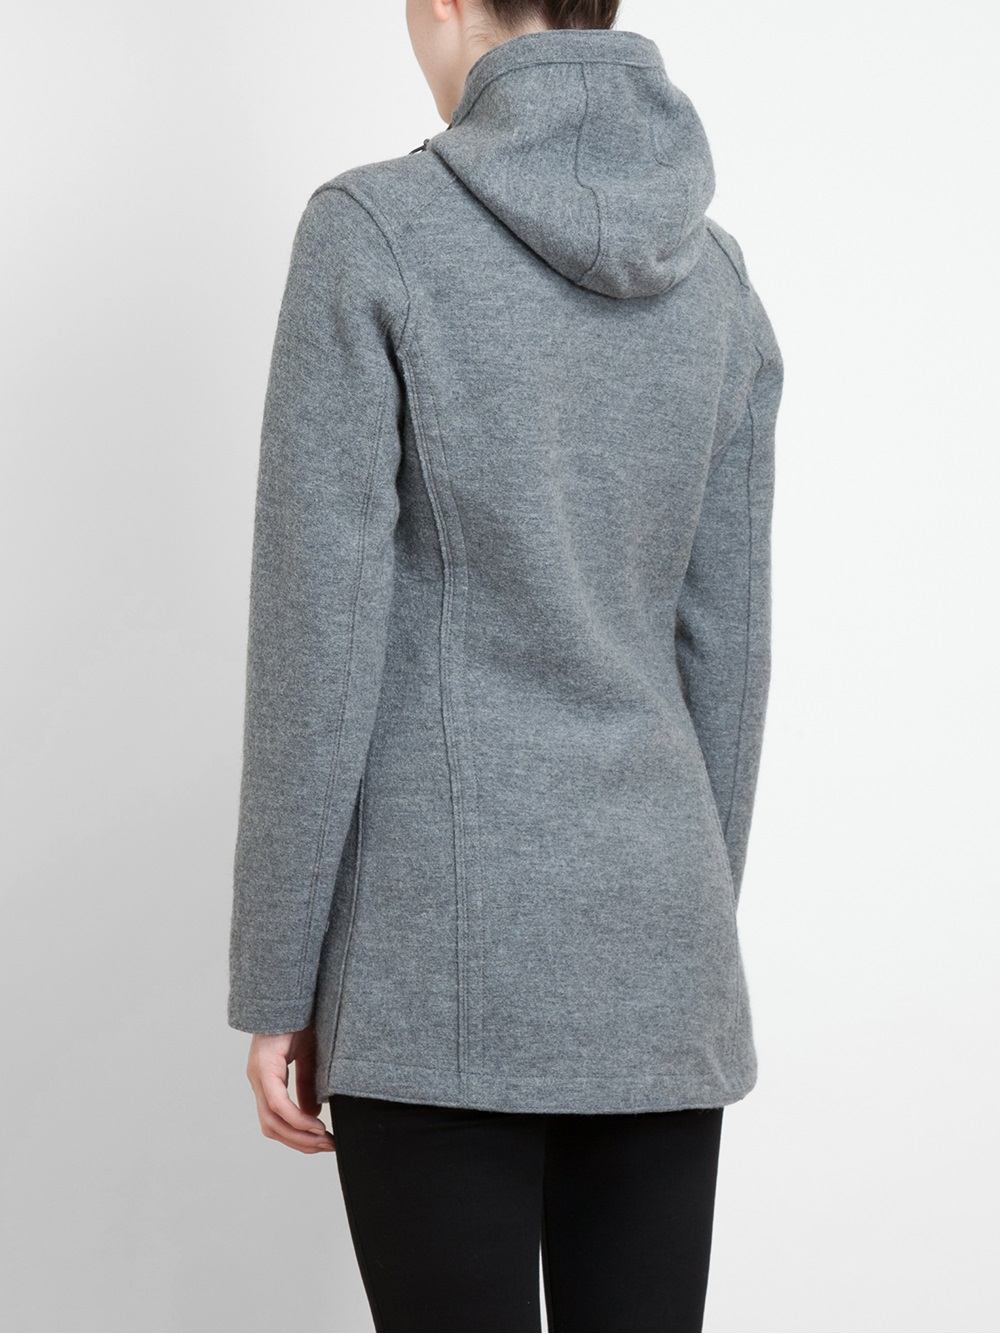 Frauenschuh Soraya Boiled Wool Parka Coat in Gray | Lyst